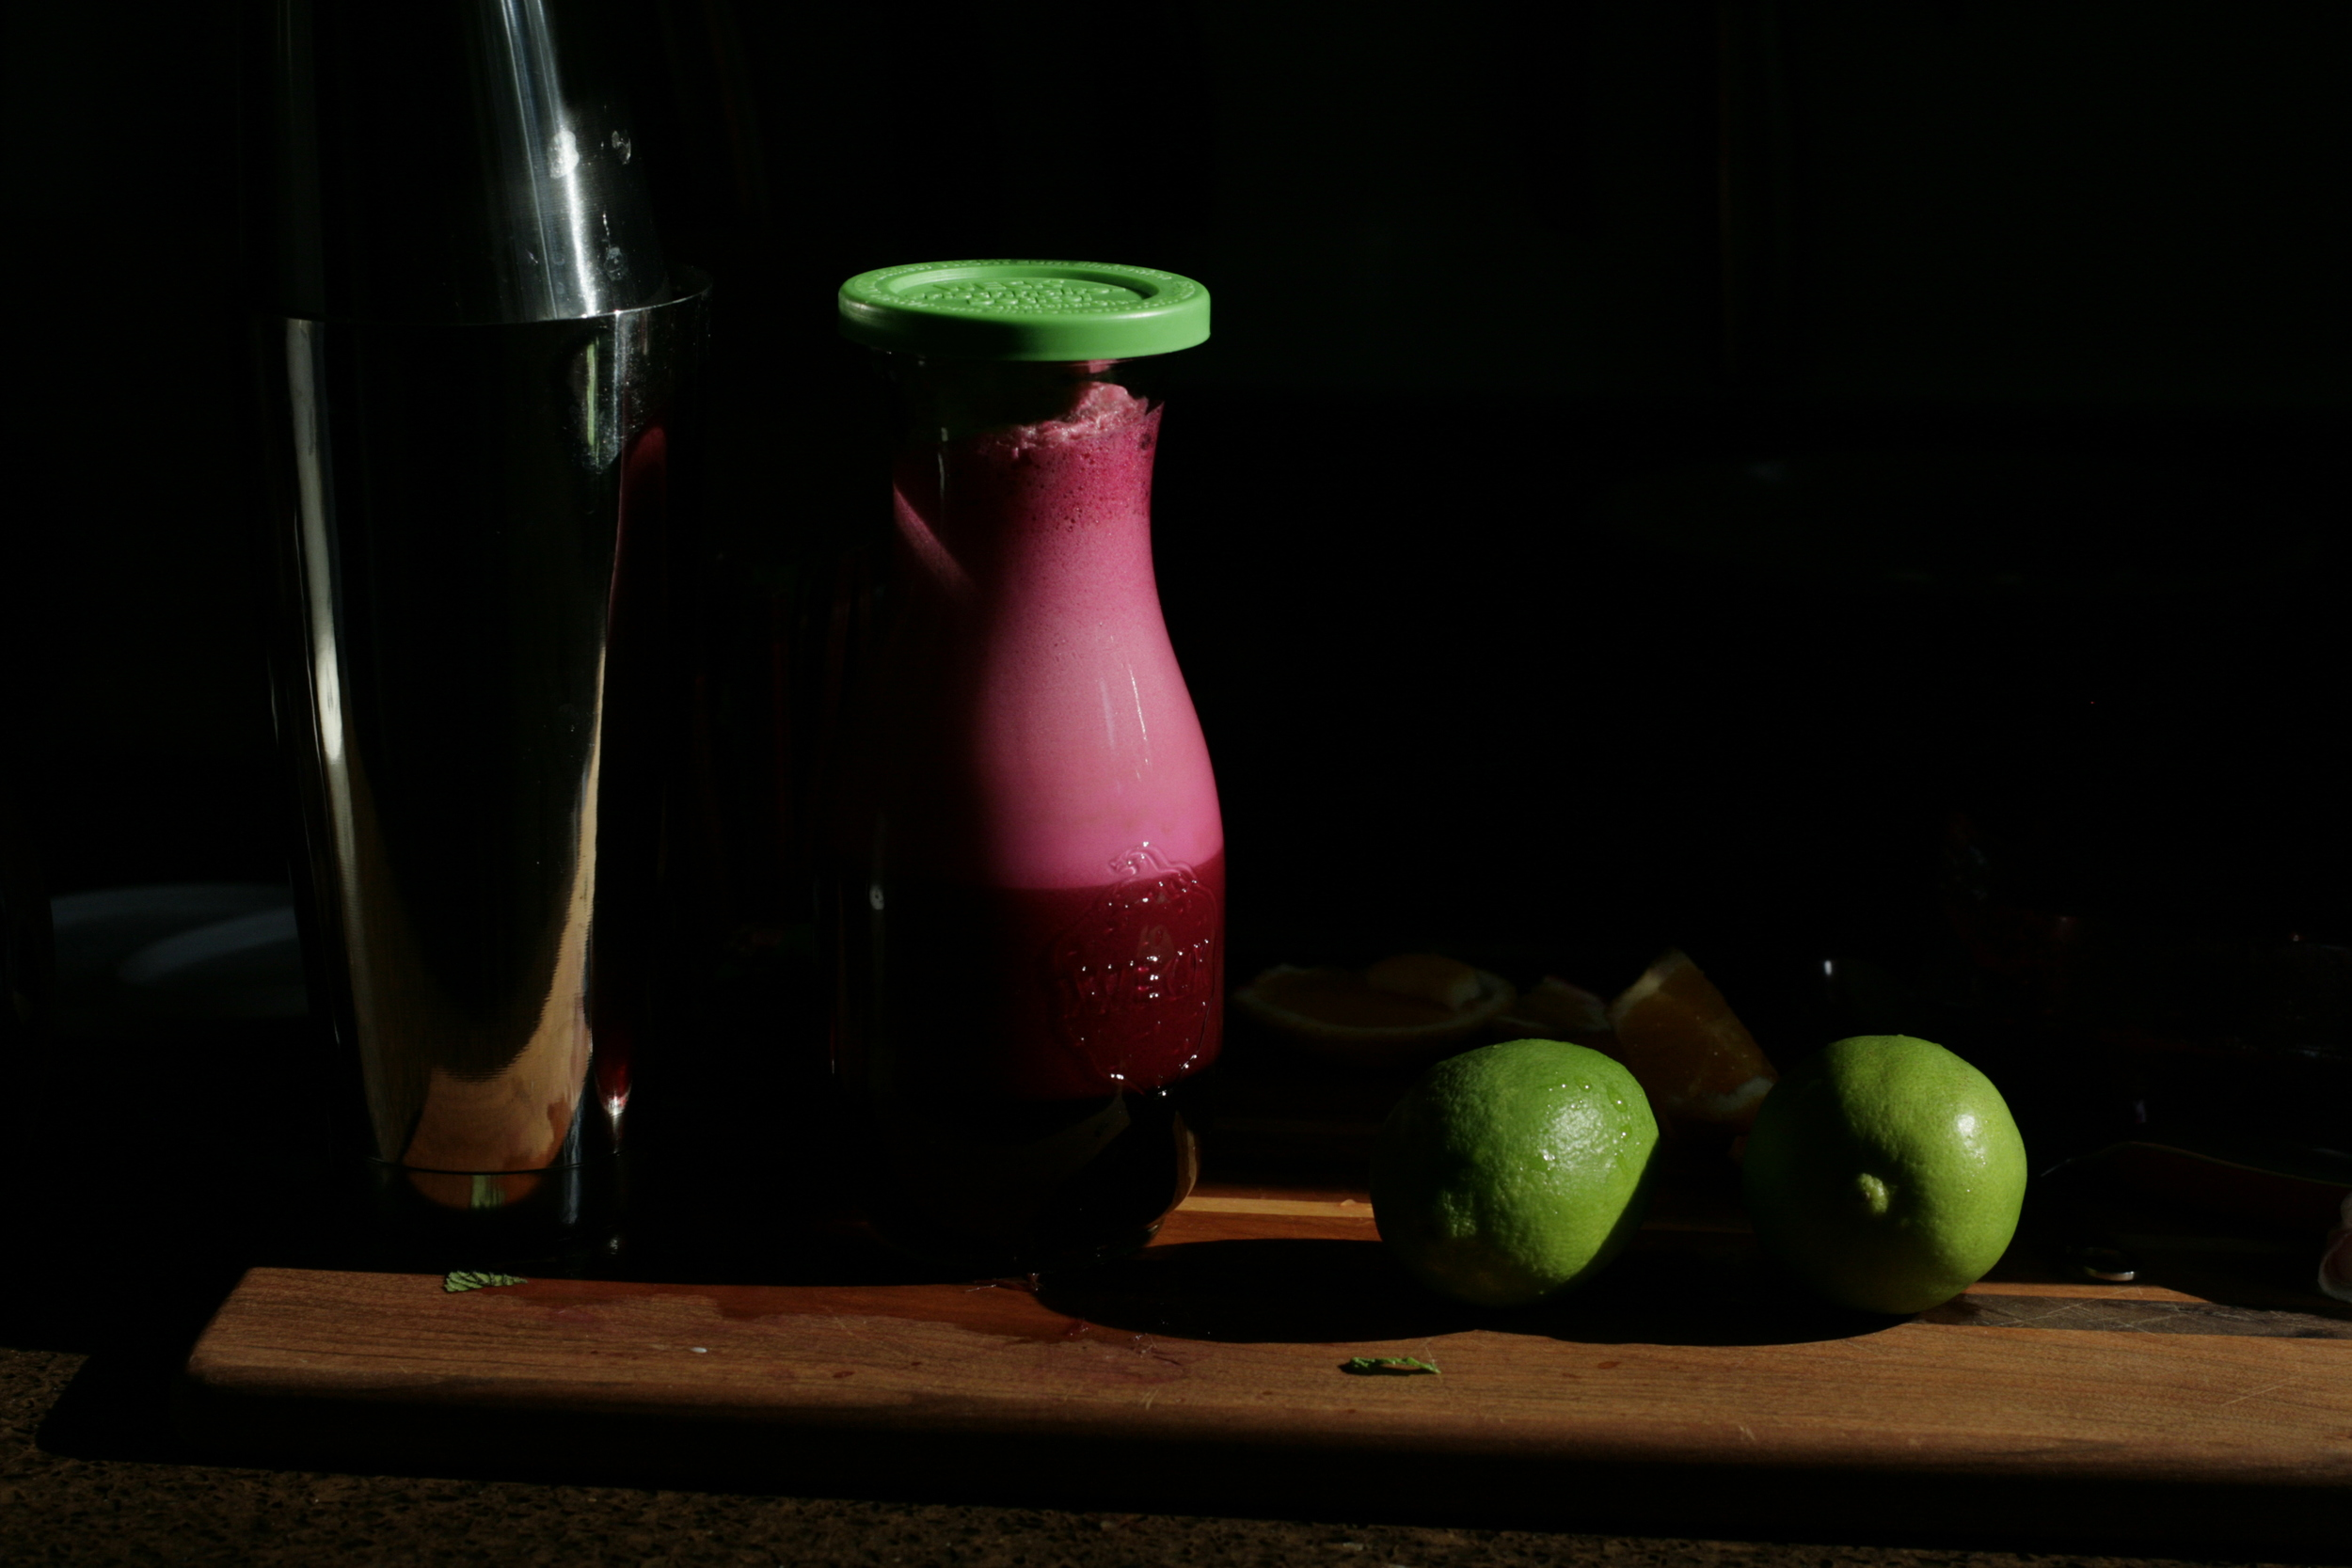 beet-apple-mint juice in the light